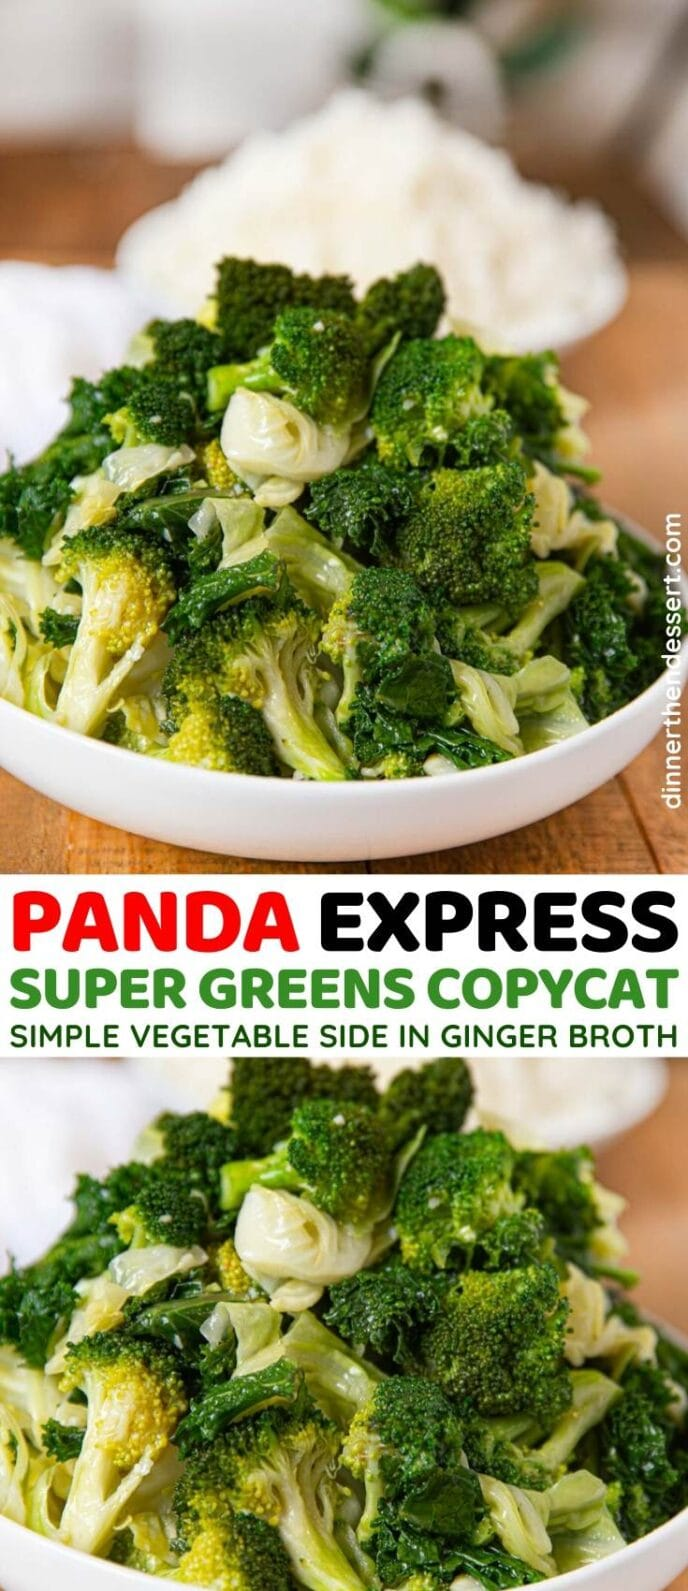 Panda Express Super Greens Copycat collage